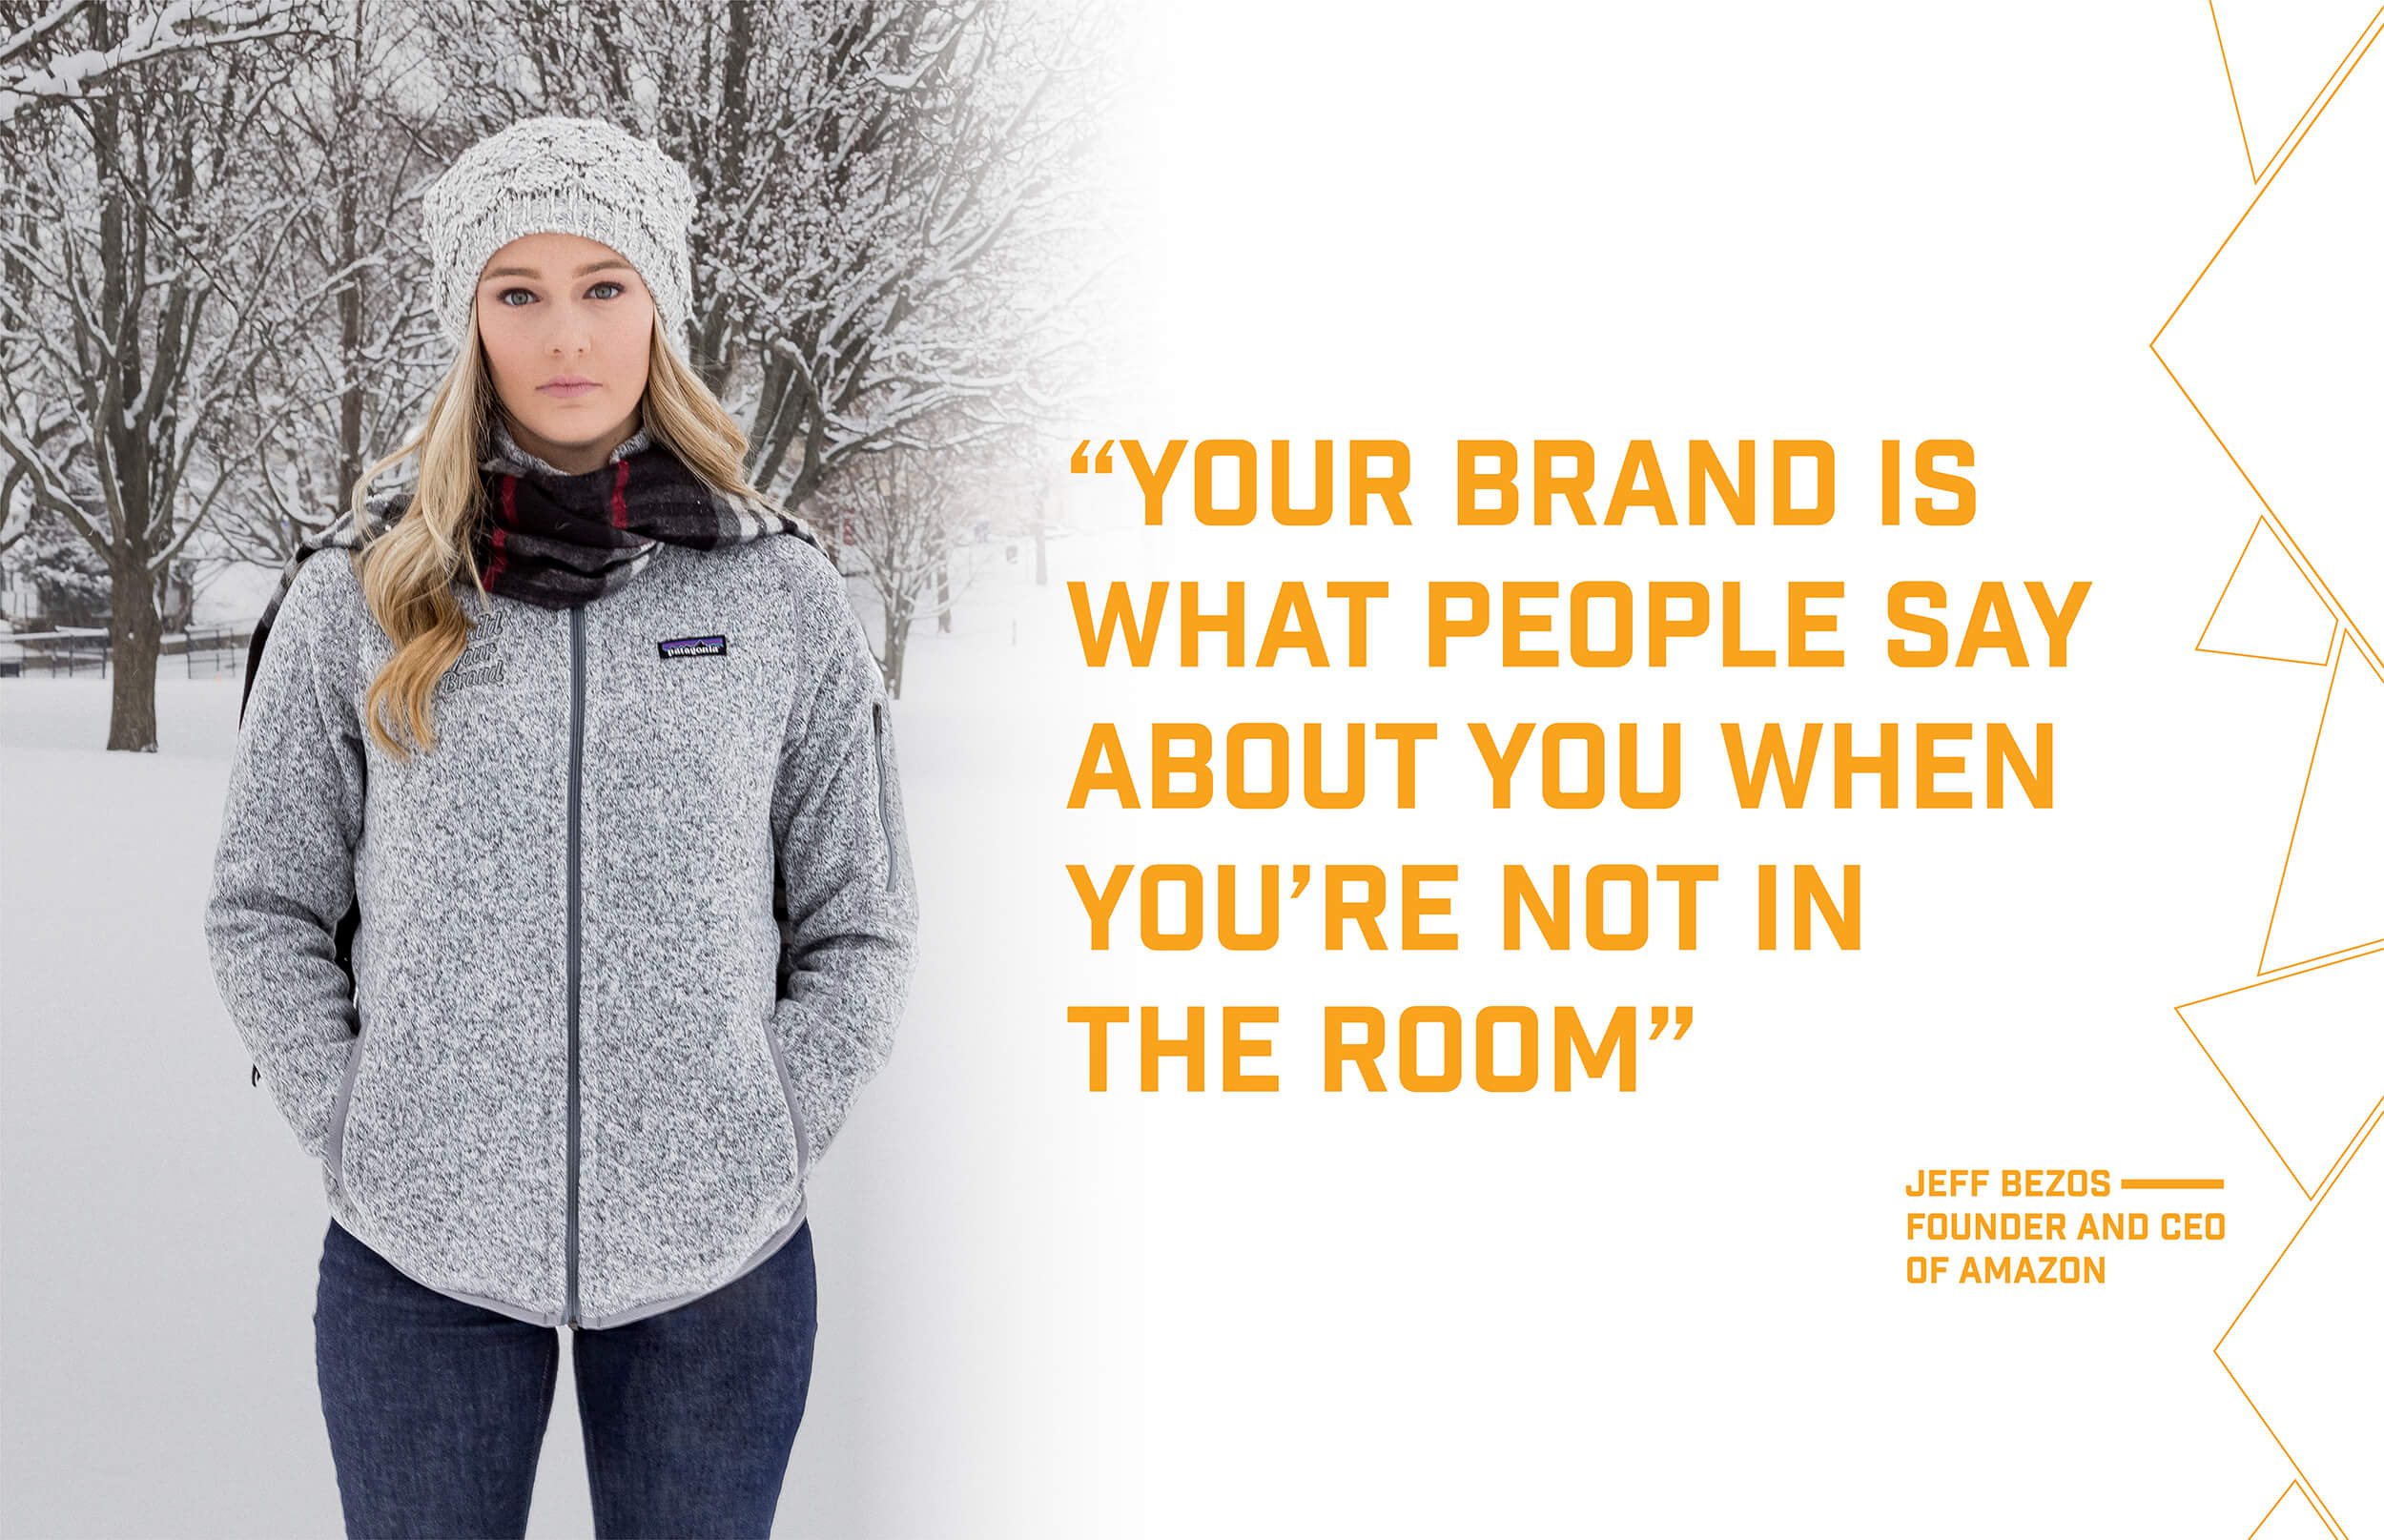 Build Your Brand: Promotional Products & Brand Integrity